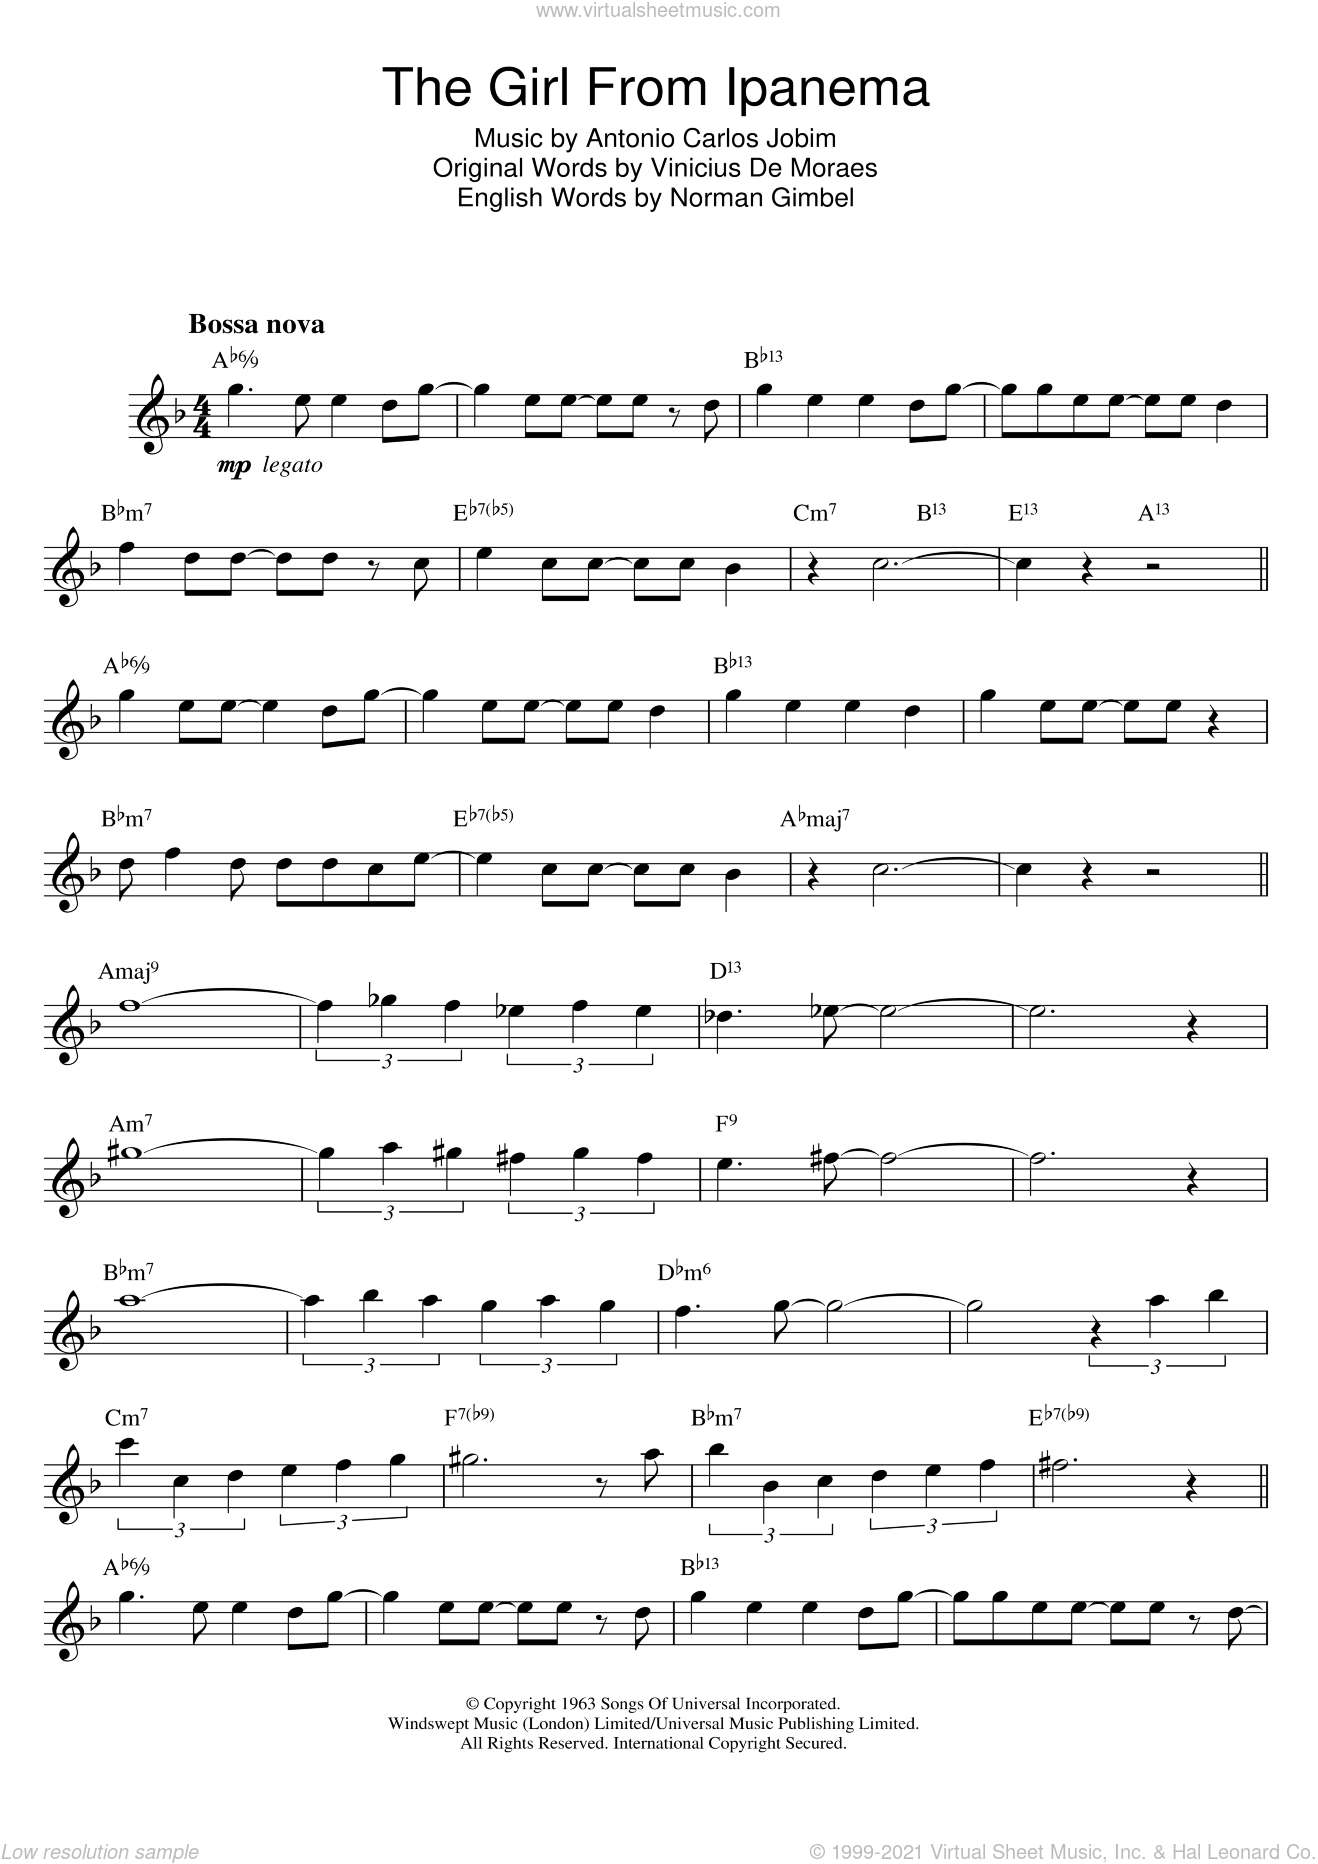 The Girl From Ipanema (Garota De Ipanema) sheet music for saxophone solo by Antonio Carlos Jobim, Norman Gimbel and Vinicius de Moraes, intermediate saxophone. Score Image Preview.